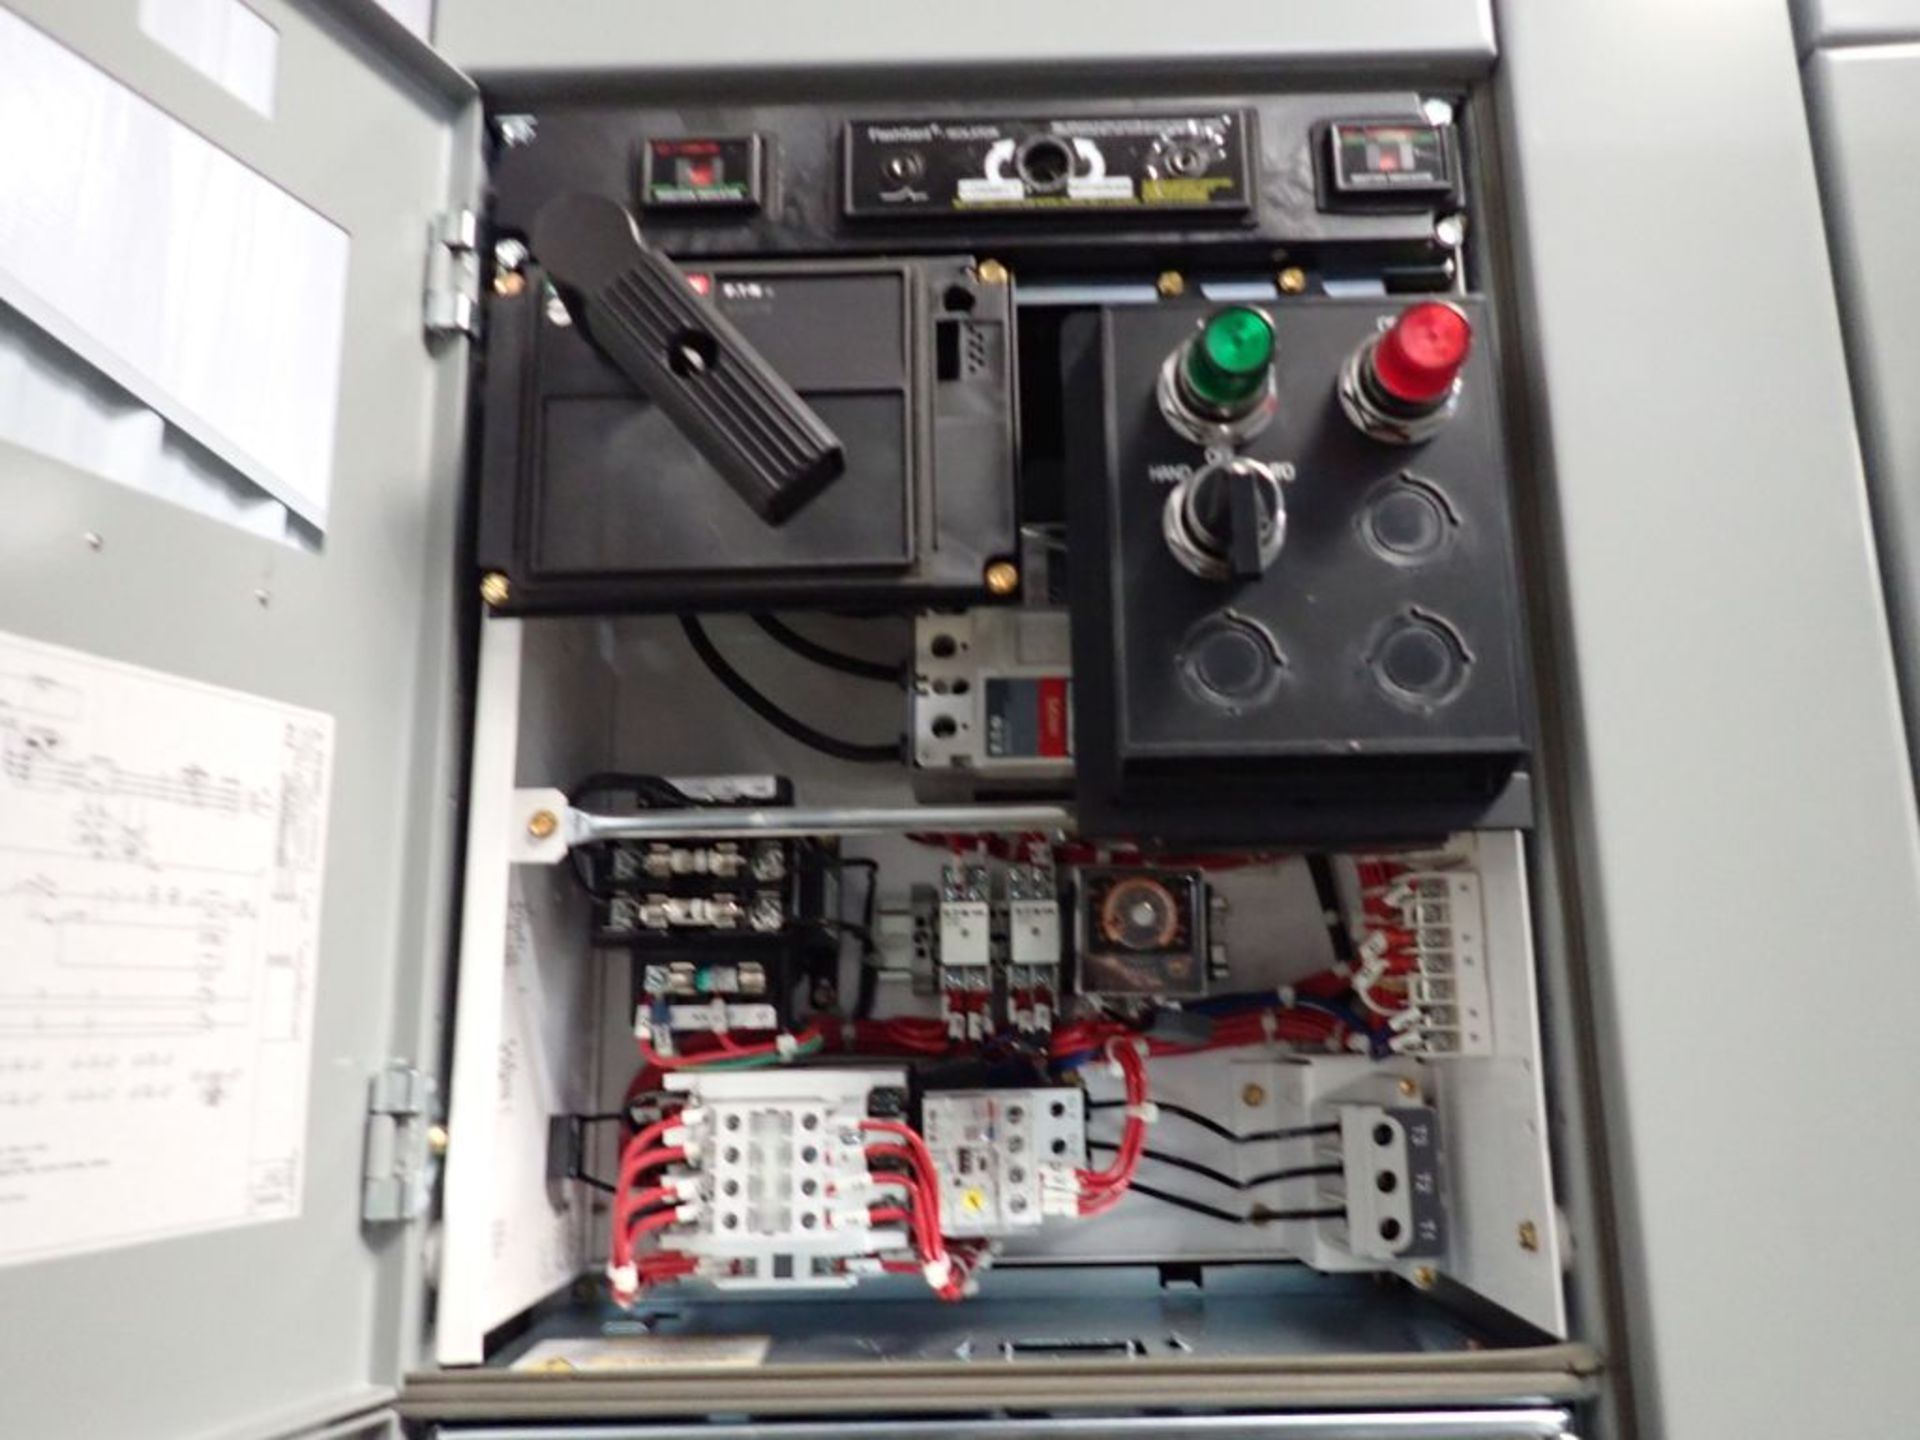 Eaton Freedom 2100 Series Motor Control Center | (11) F206-30A-10HP; (5) F206-15A-10HP; (1) SVX900- - Image 10 of 102